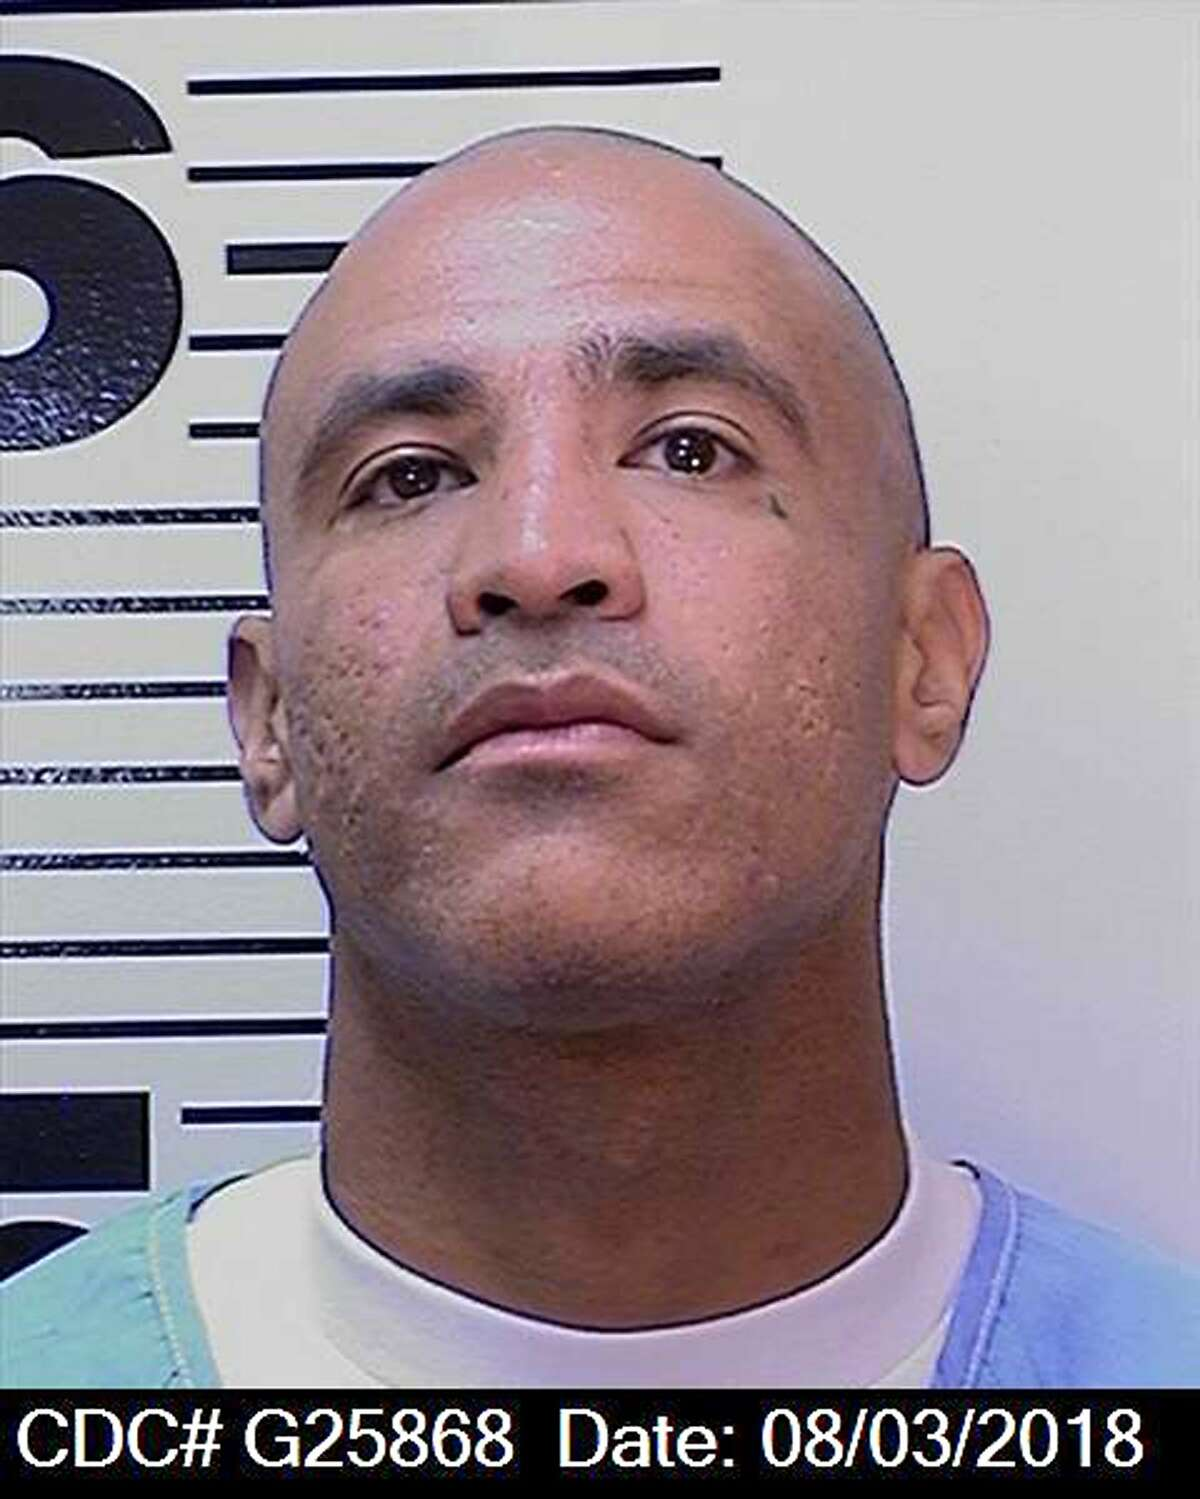 This Aug. 3, 2018 photo provided by the California Department of Corrections and Rehabilitation (CDCR) shows death row inmate Luis Rodriguez, 34. Corrections spokeswoman Terry Thornton says Rodriguez is the suspect in the stabbing death of fellow condemned inmate Jonathan Fajardo, 30, who was stabbed to death in the chest and neck with an inmate-made weapon Friday, Oct. 5, 2018, in a recreational yard of the cell house that holds the bulk of condemned inmates at San Quentin State Prison. (California Department of Corrections and Rehabilitation via AP)